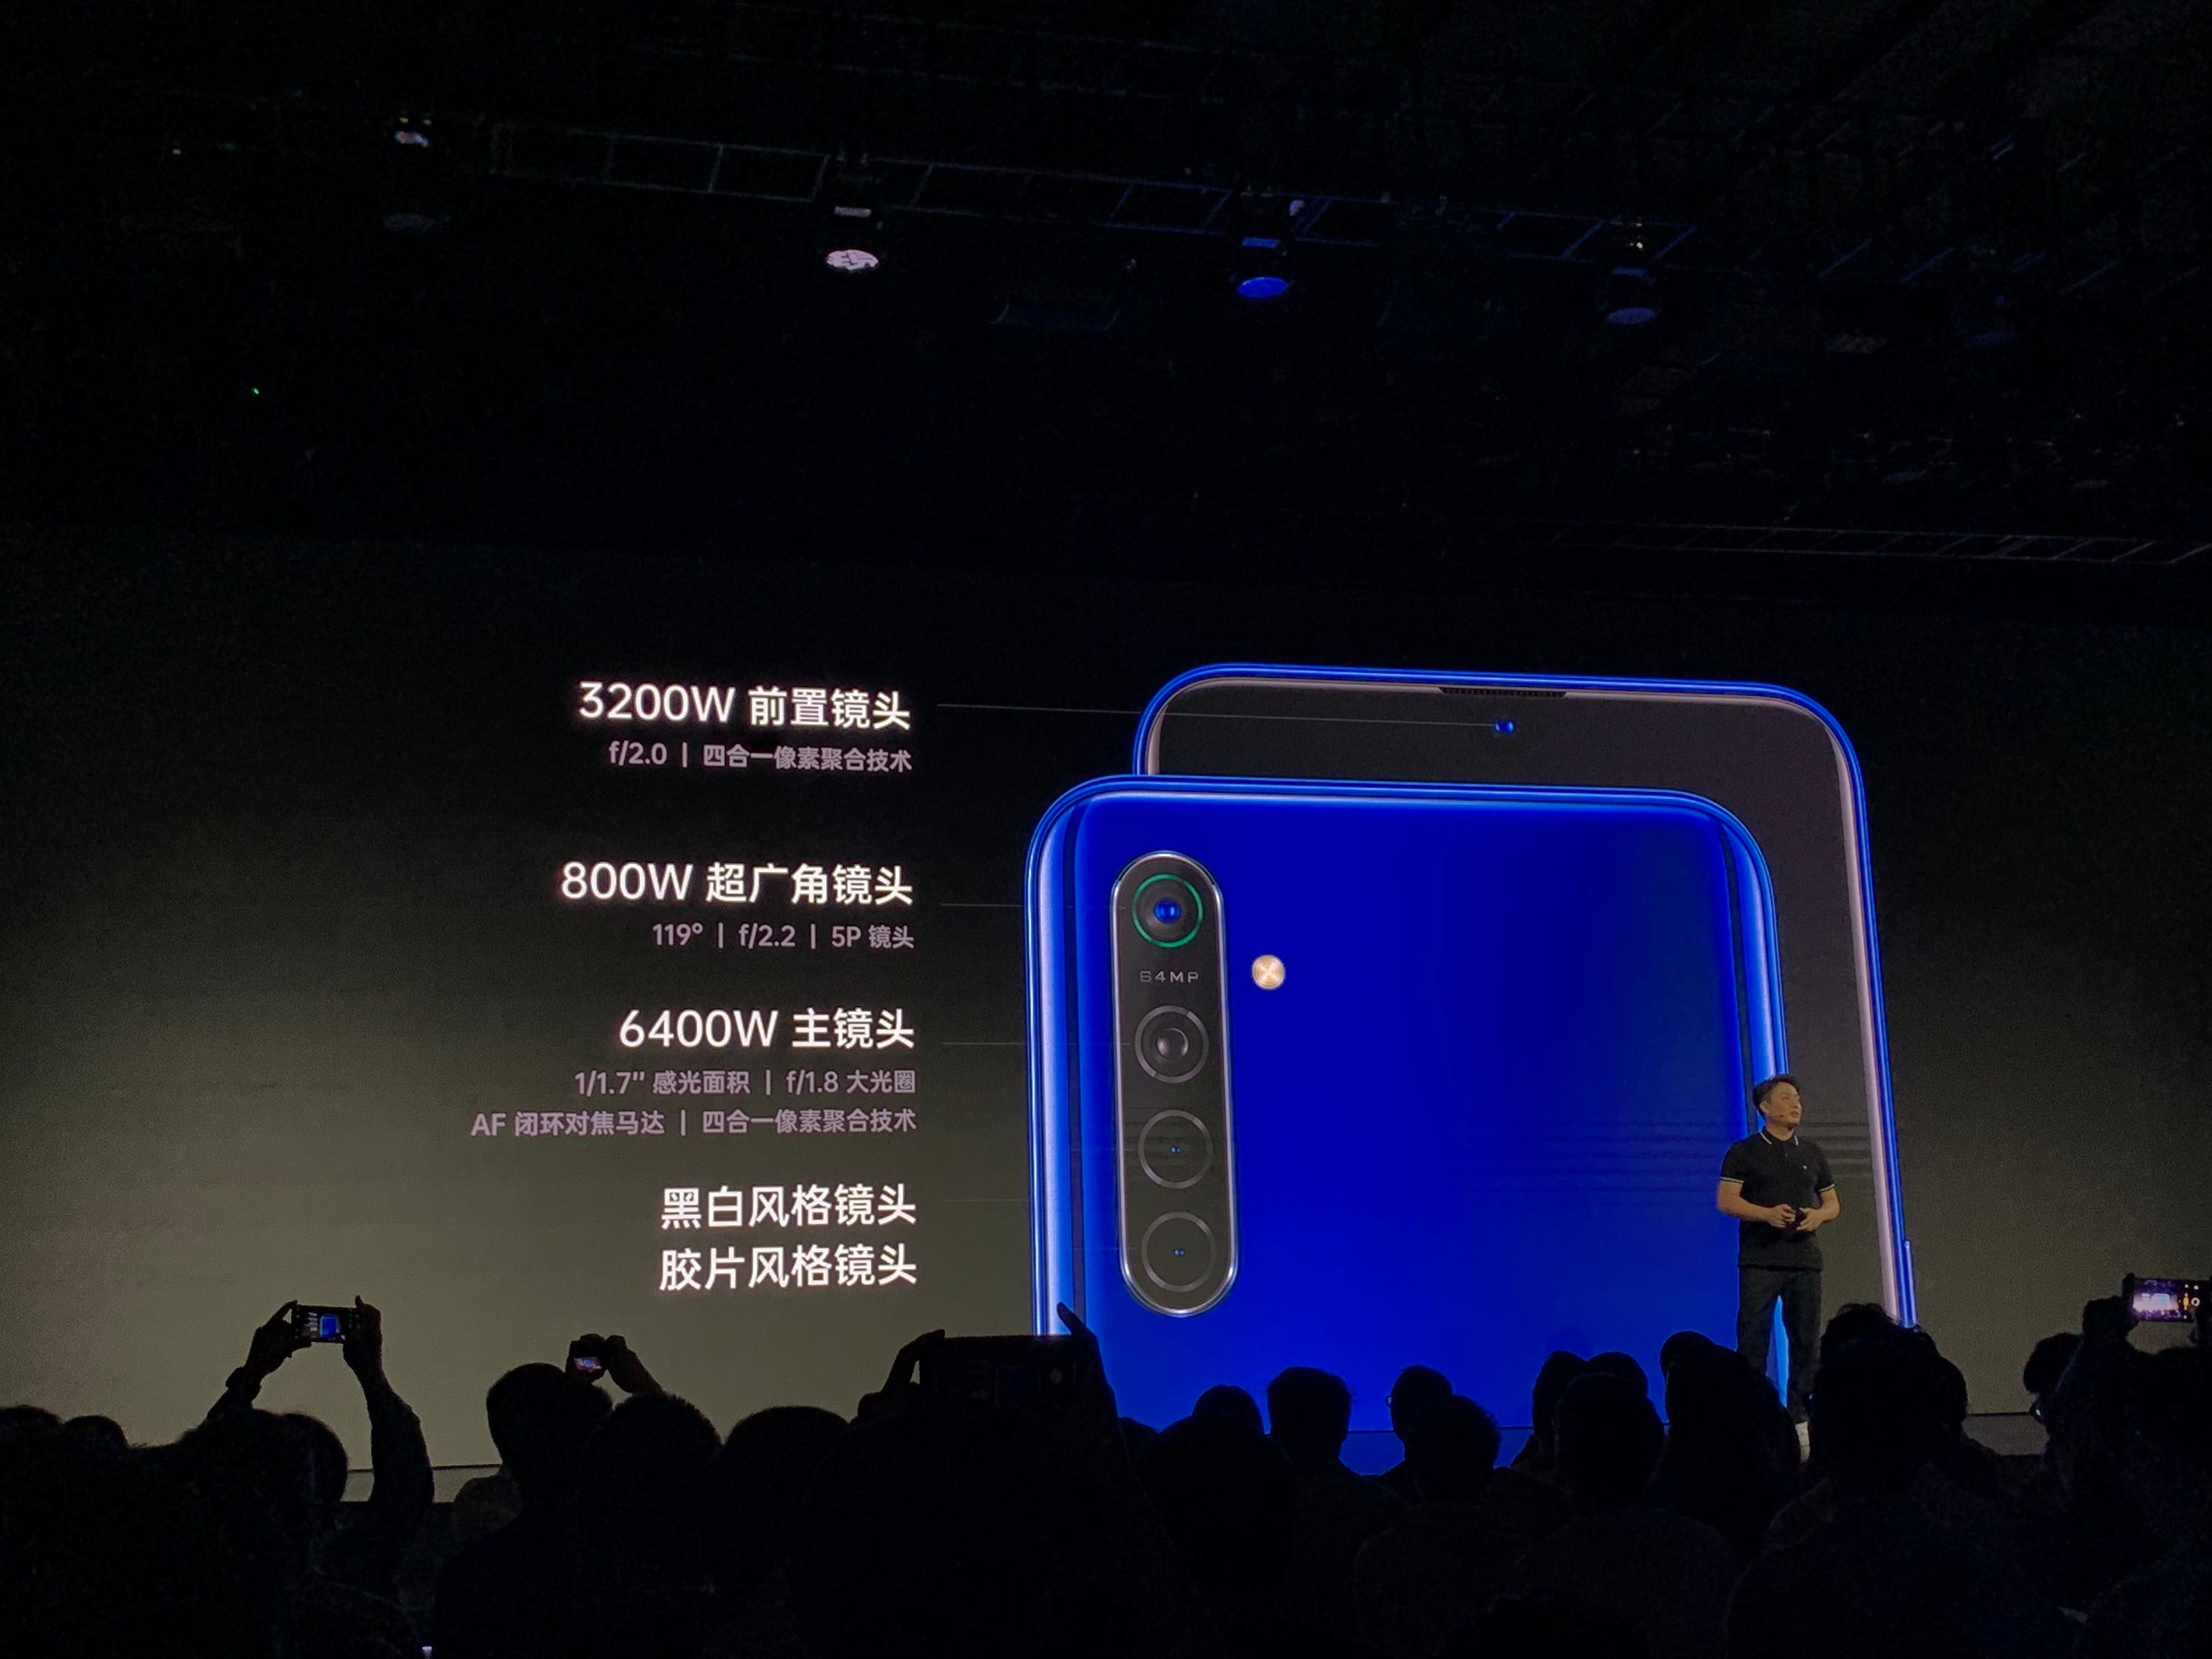 OPPO K5 is Official with Snapdragon 730G and VOOC 4.0 Charging